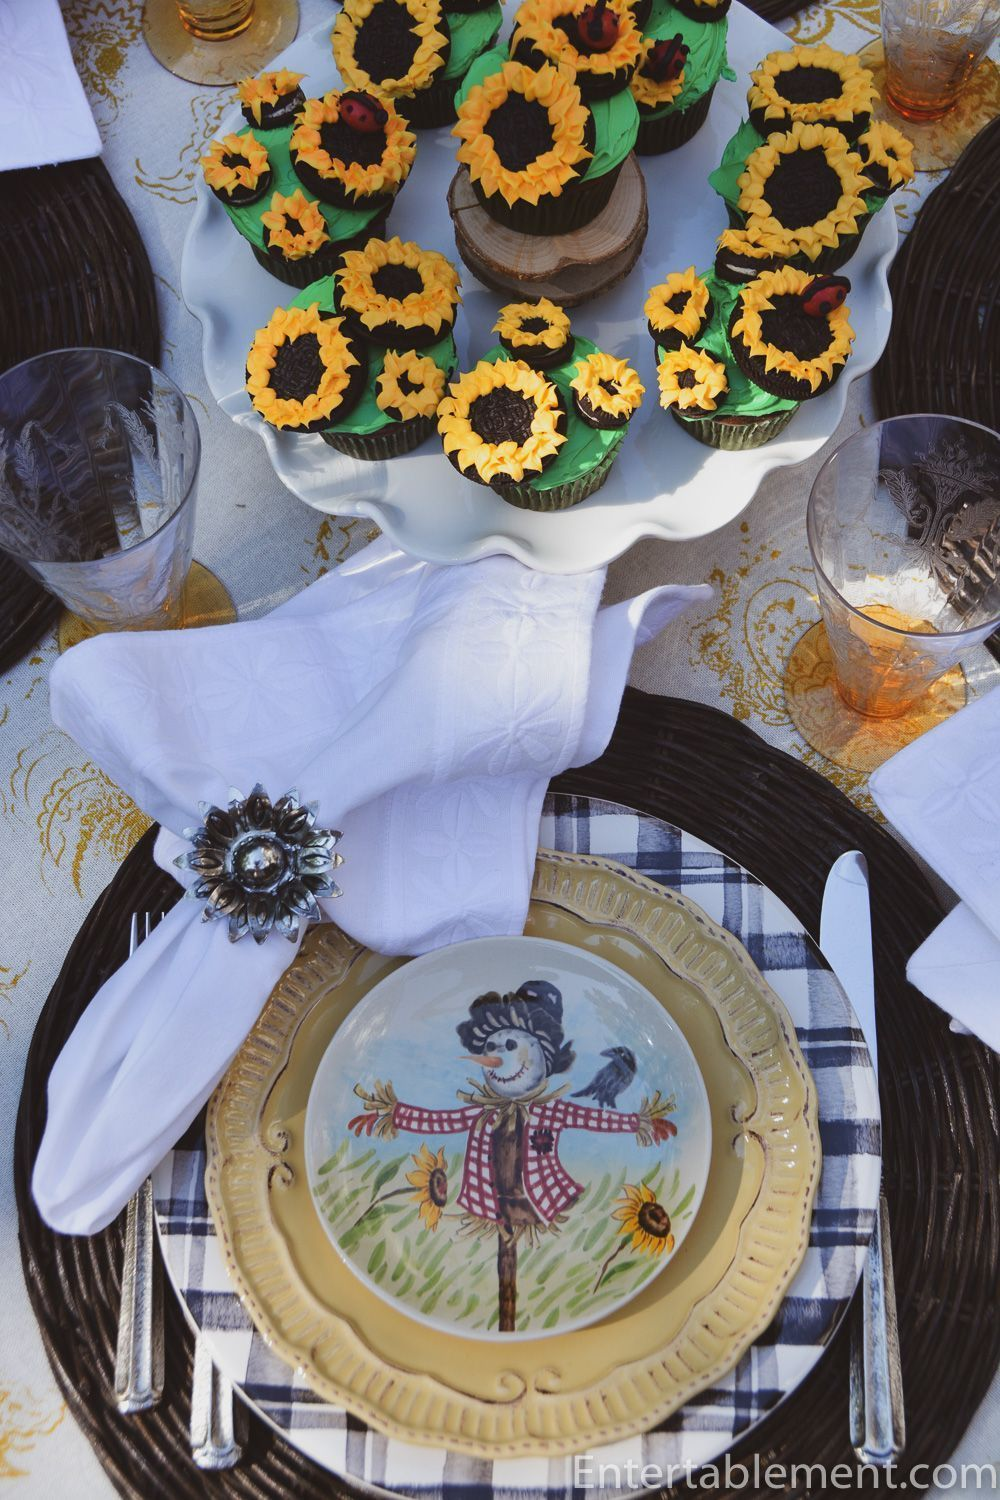 Sunflowers, Scarecrows and Sunflower Cupcakes celebrate the end of summer #tablesetting #tablescape #sunflowers #Maxcera #summer #sunflowercupcakes Sunflowers, Scarecrows and Sunflower Cupcakes celebrate the end of summer #tablesetting #tablescape #sunflowers #Maxcera #summer #sunflowercupcakes Sunflowers, Scarecrows and Sunflower Cupcakes celebrate the end of summer #tablesetting #tablescape #sunflowers #Maxcera #summer #sunflowercupcakes Sunflowers, Scarecrows and Sunflower Cupcakes celebrate #sunflowercupcakes